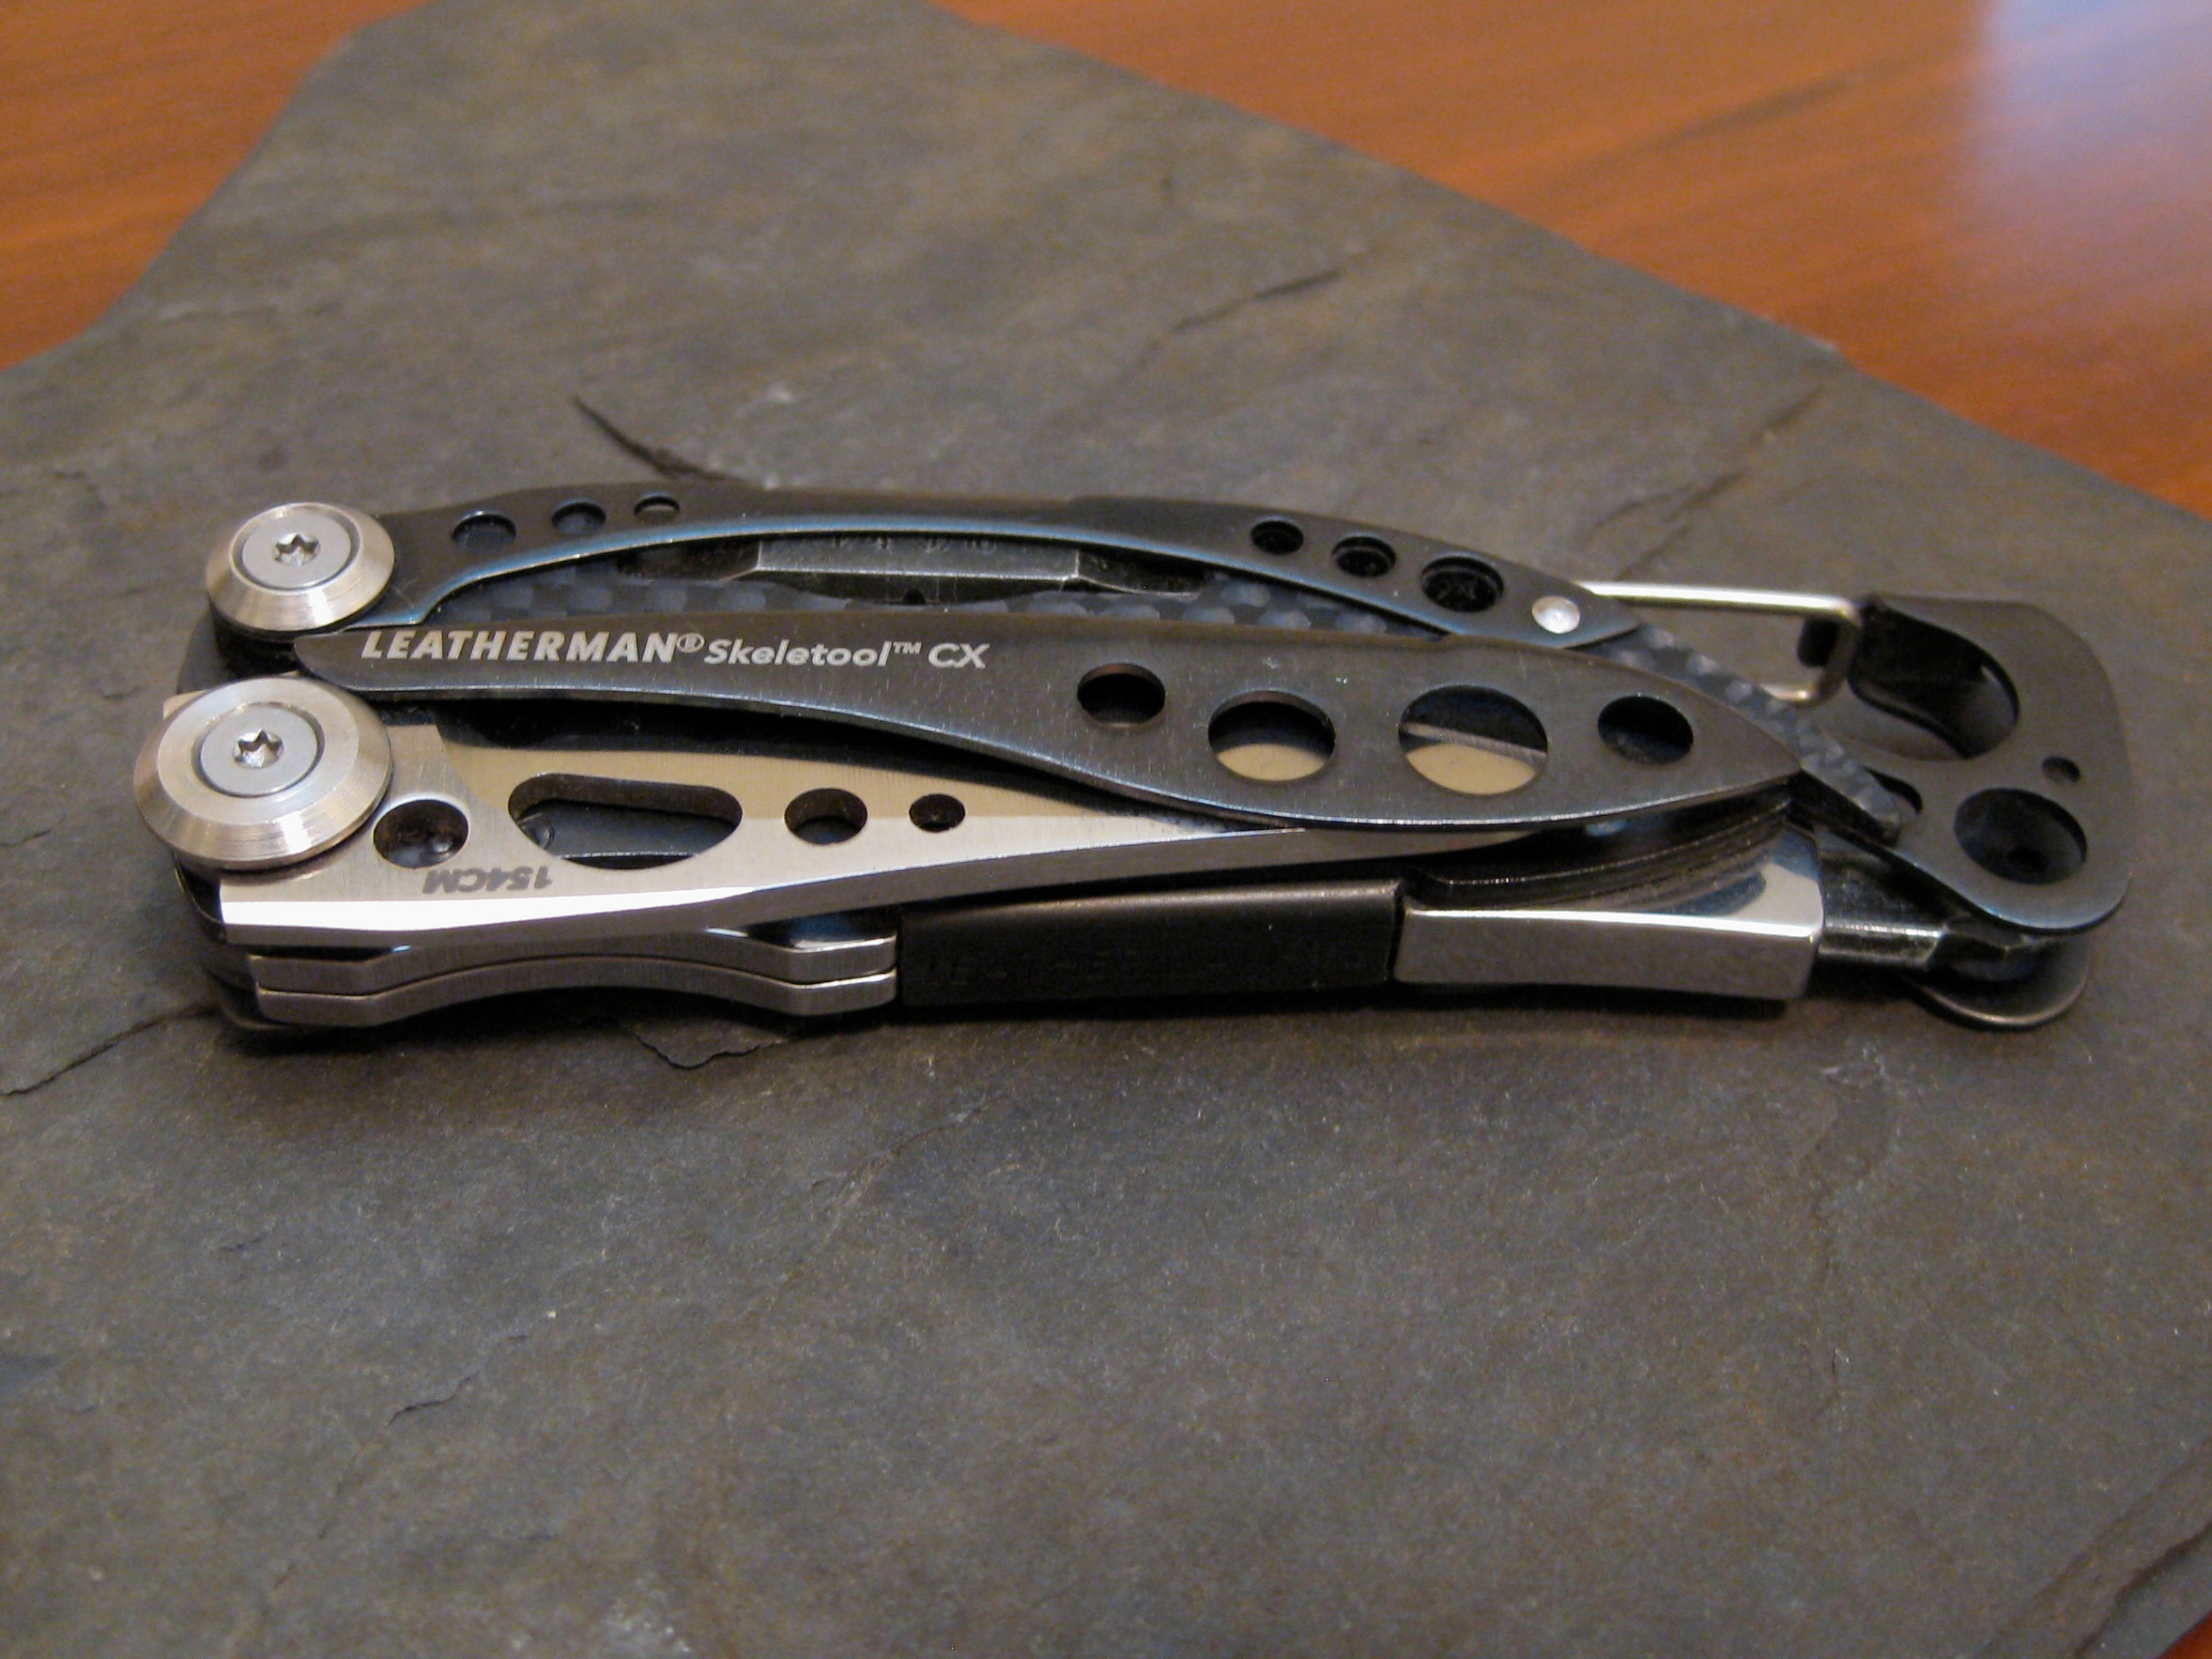 Why You Should Consider a Multitool as an EDC Alternative